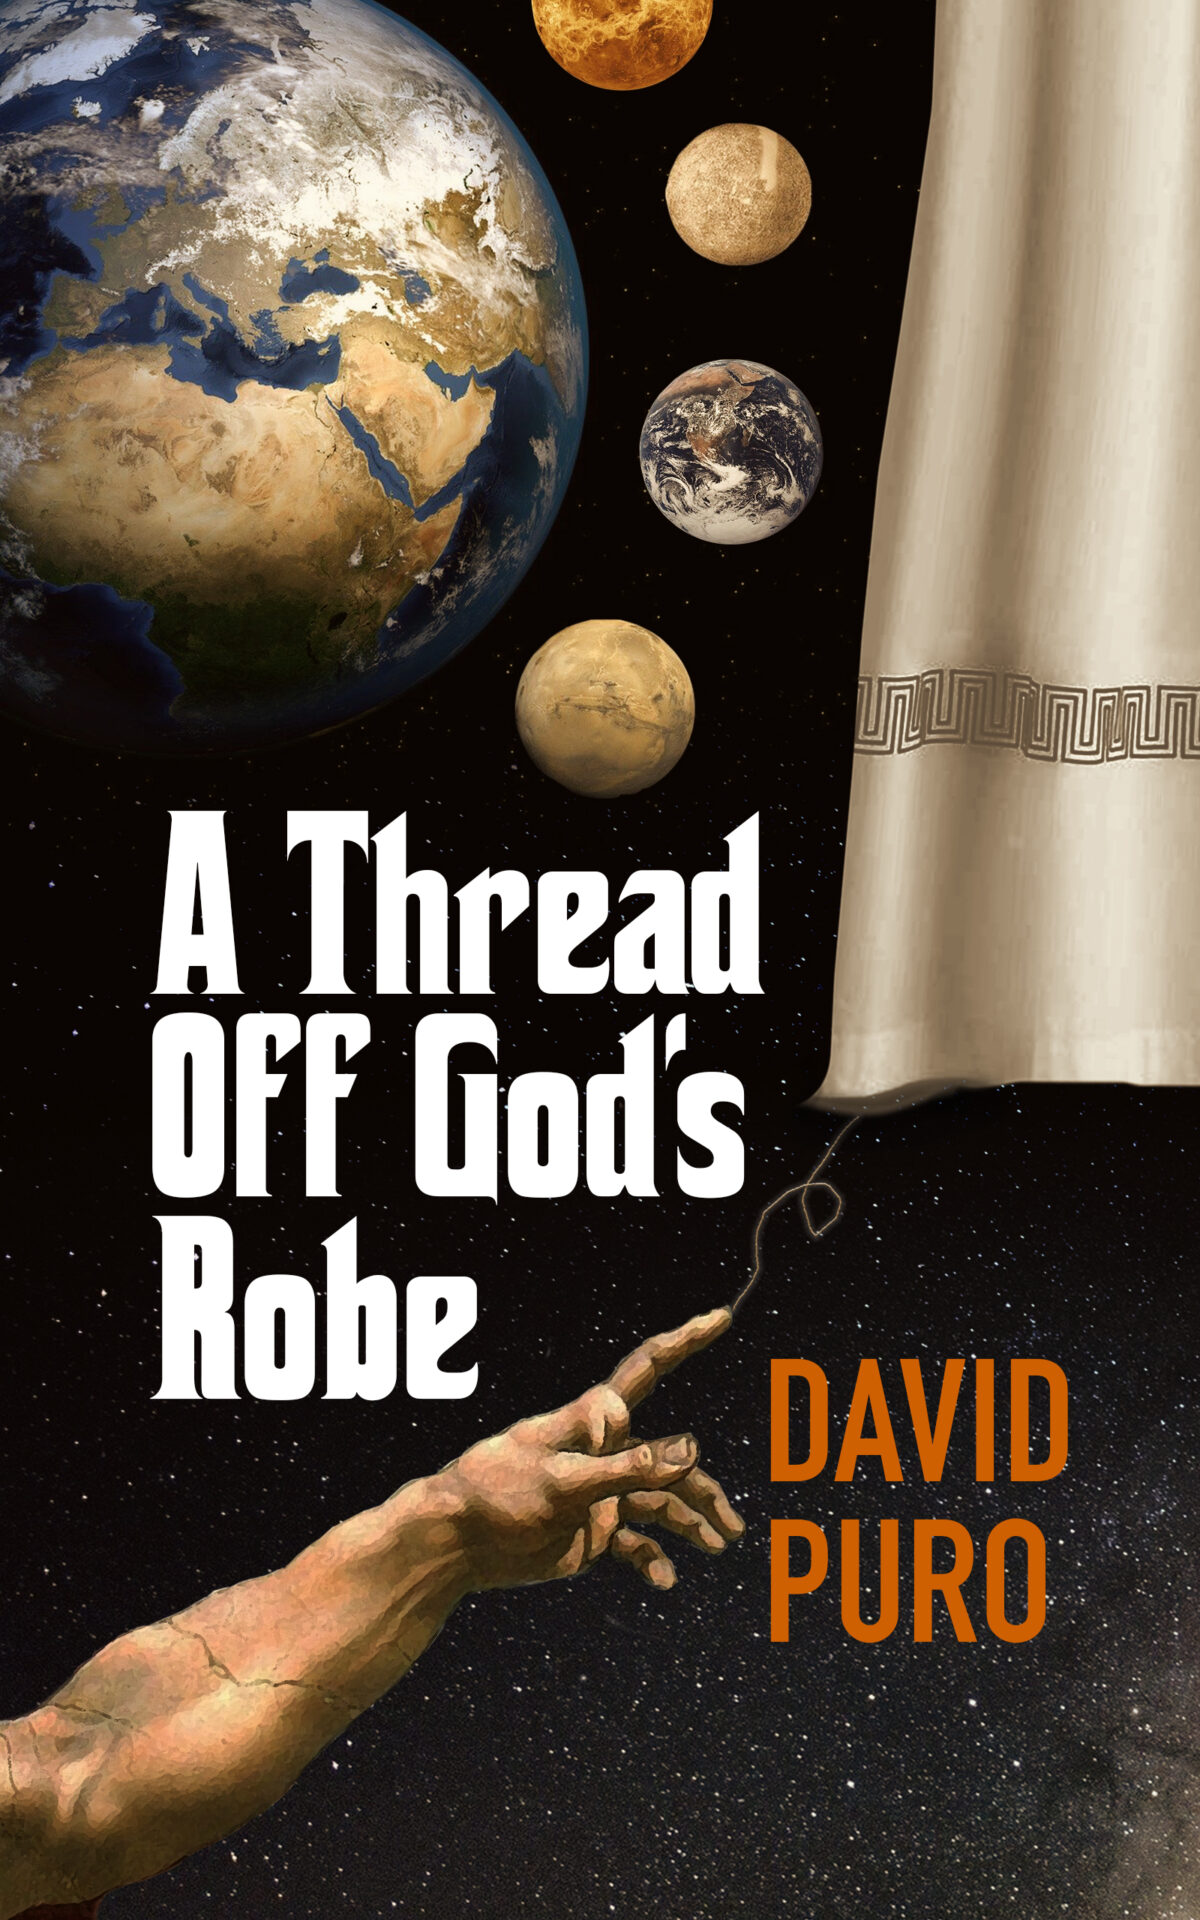 Book cover for A Thread off God's Robe depicting the hand from The Creation of Adam pointing to a thread trailing from a robe, with planets in the background